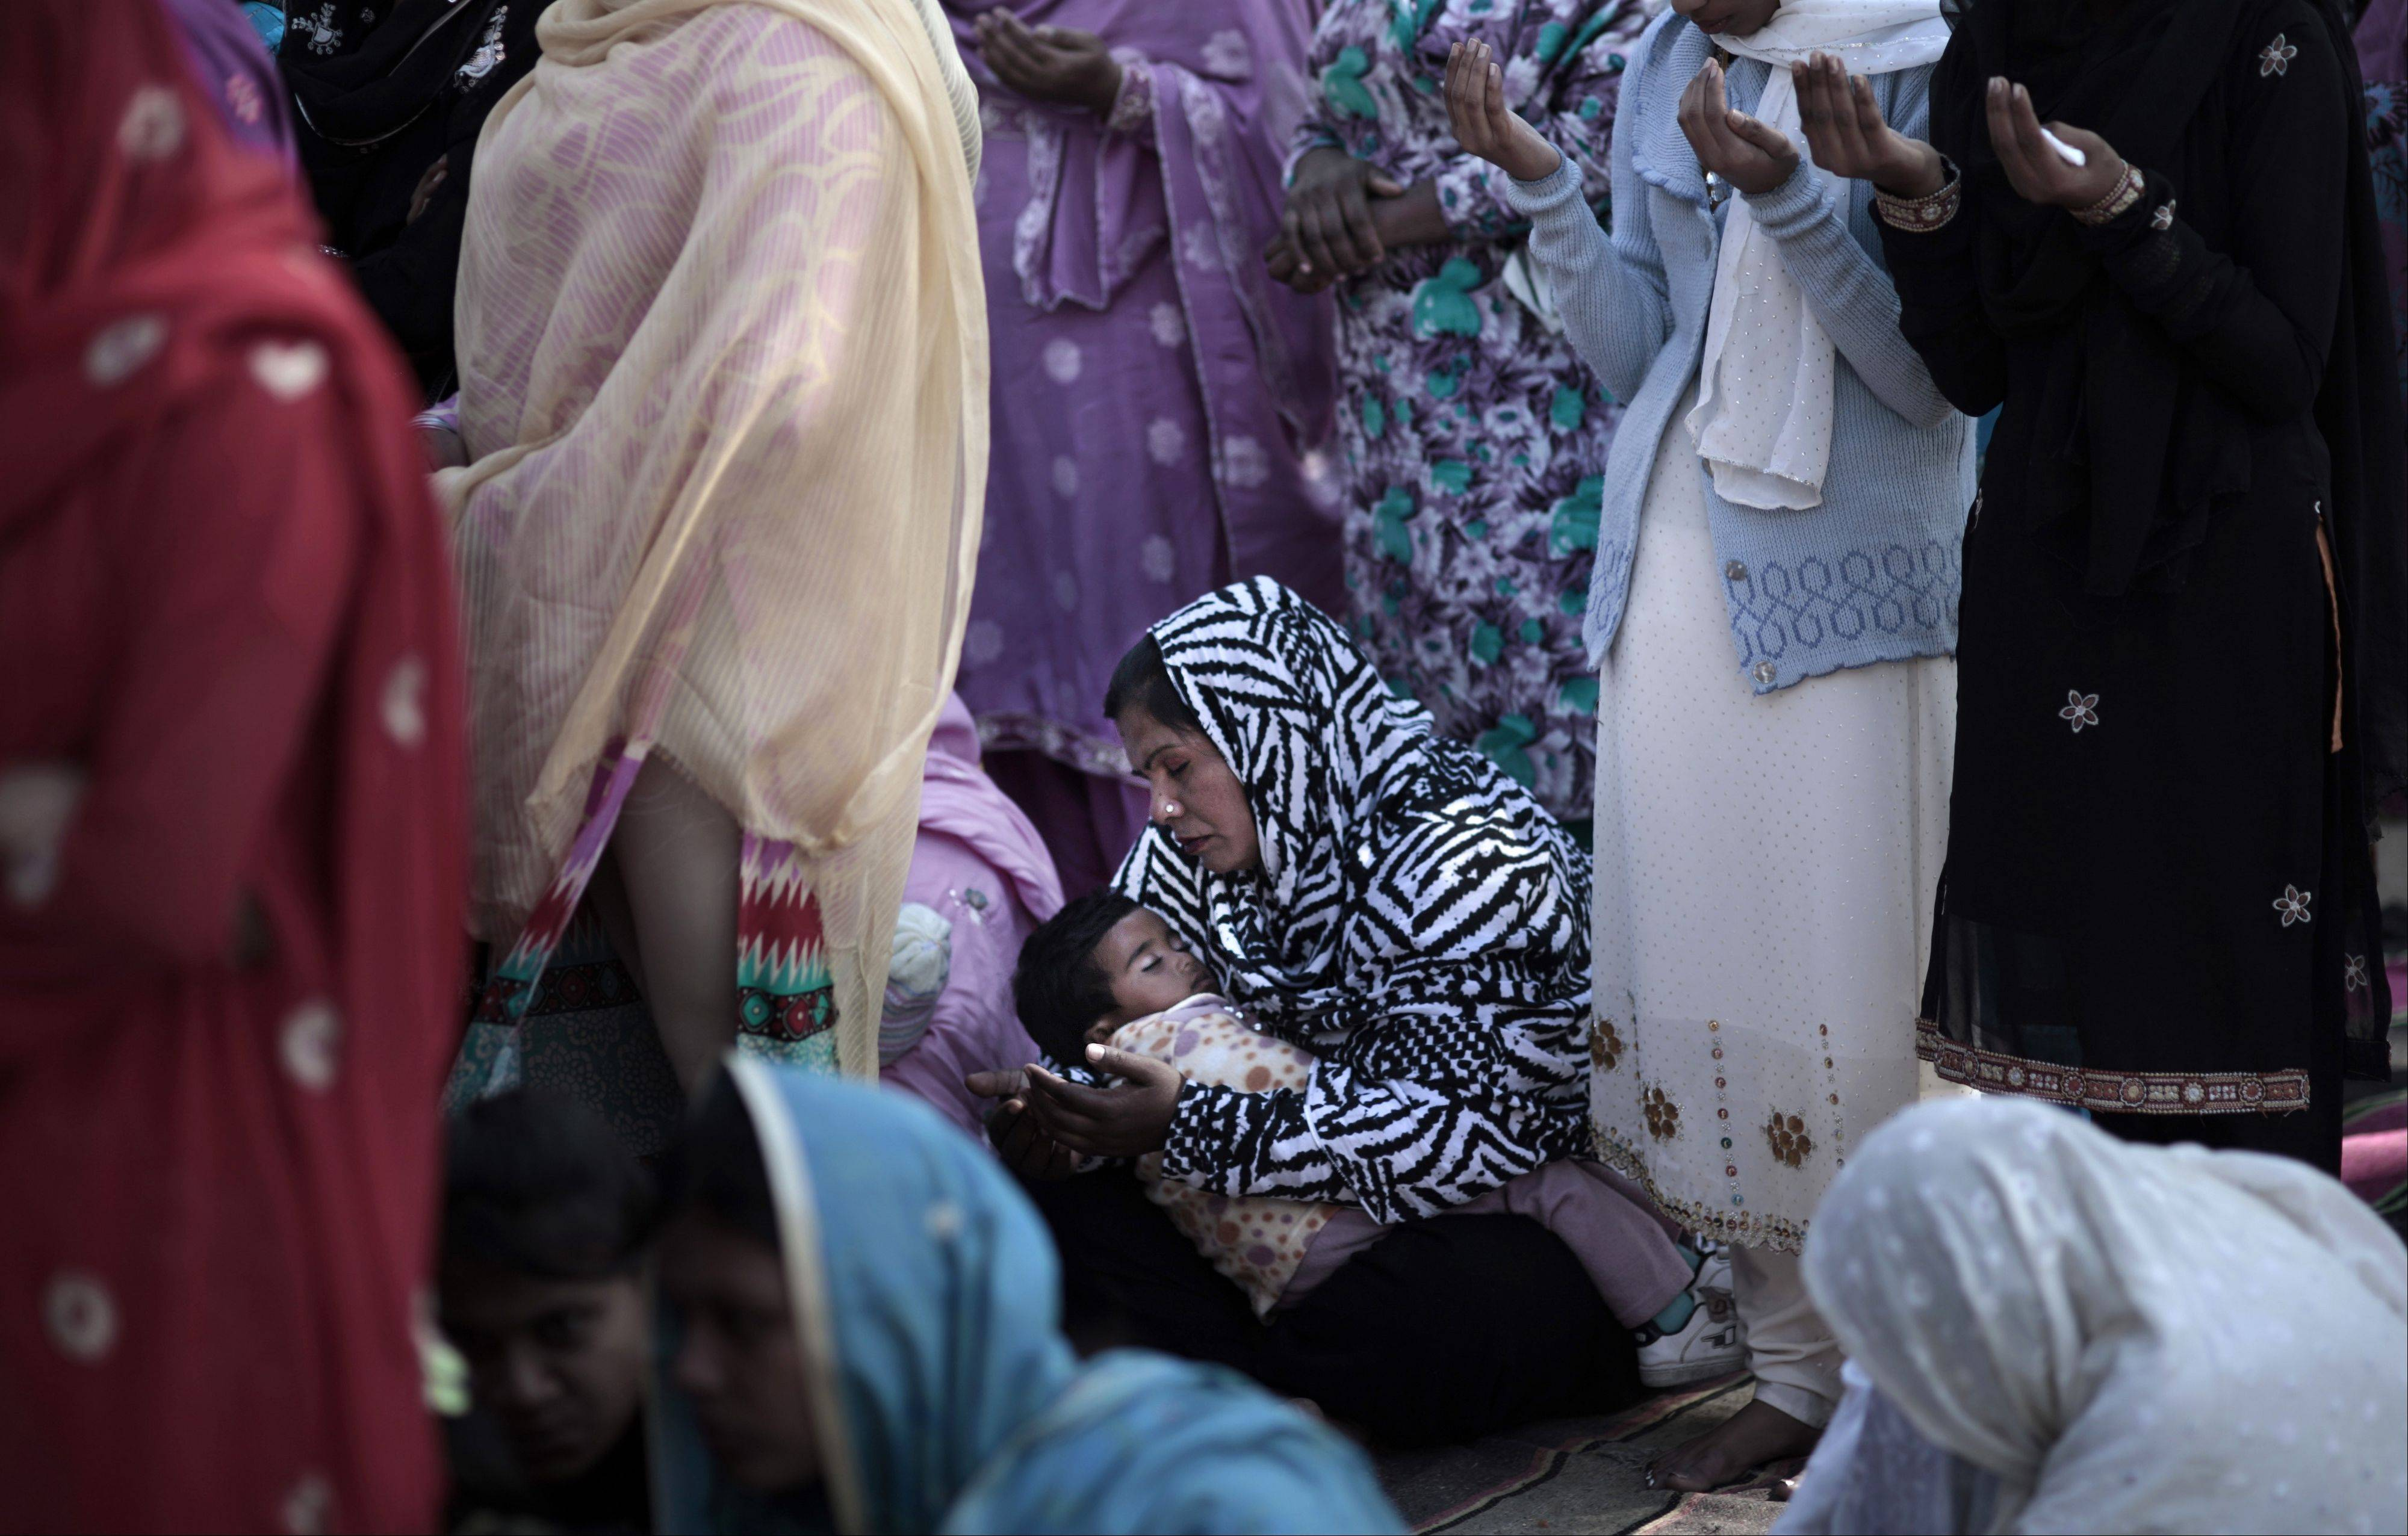 A Pakistani child, center, sleeps on her mother's lap, while she and other women pray during an outdoor Mass on Christmas Day, in a Christian neighborhood in Islamabad, Pakistan, Tuesday, Dec. 25, 2012.